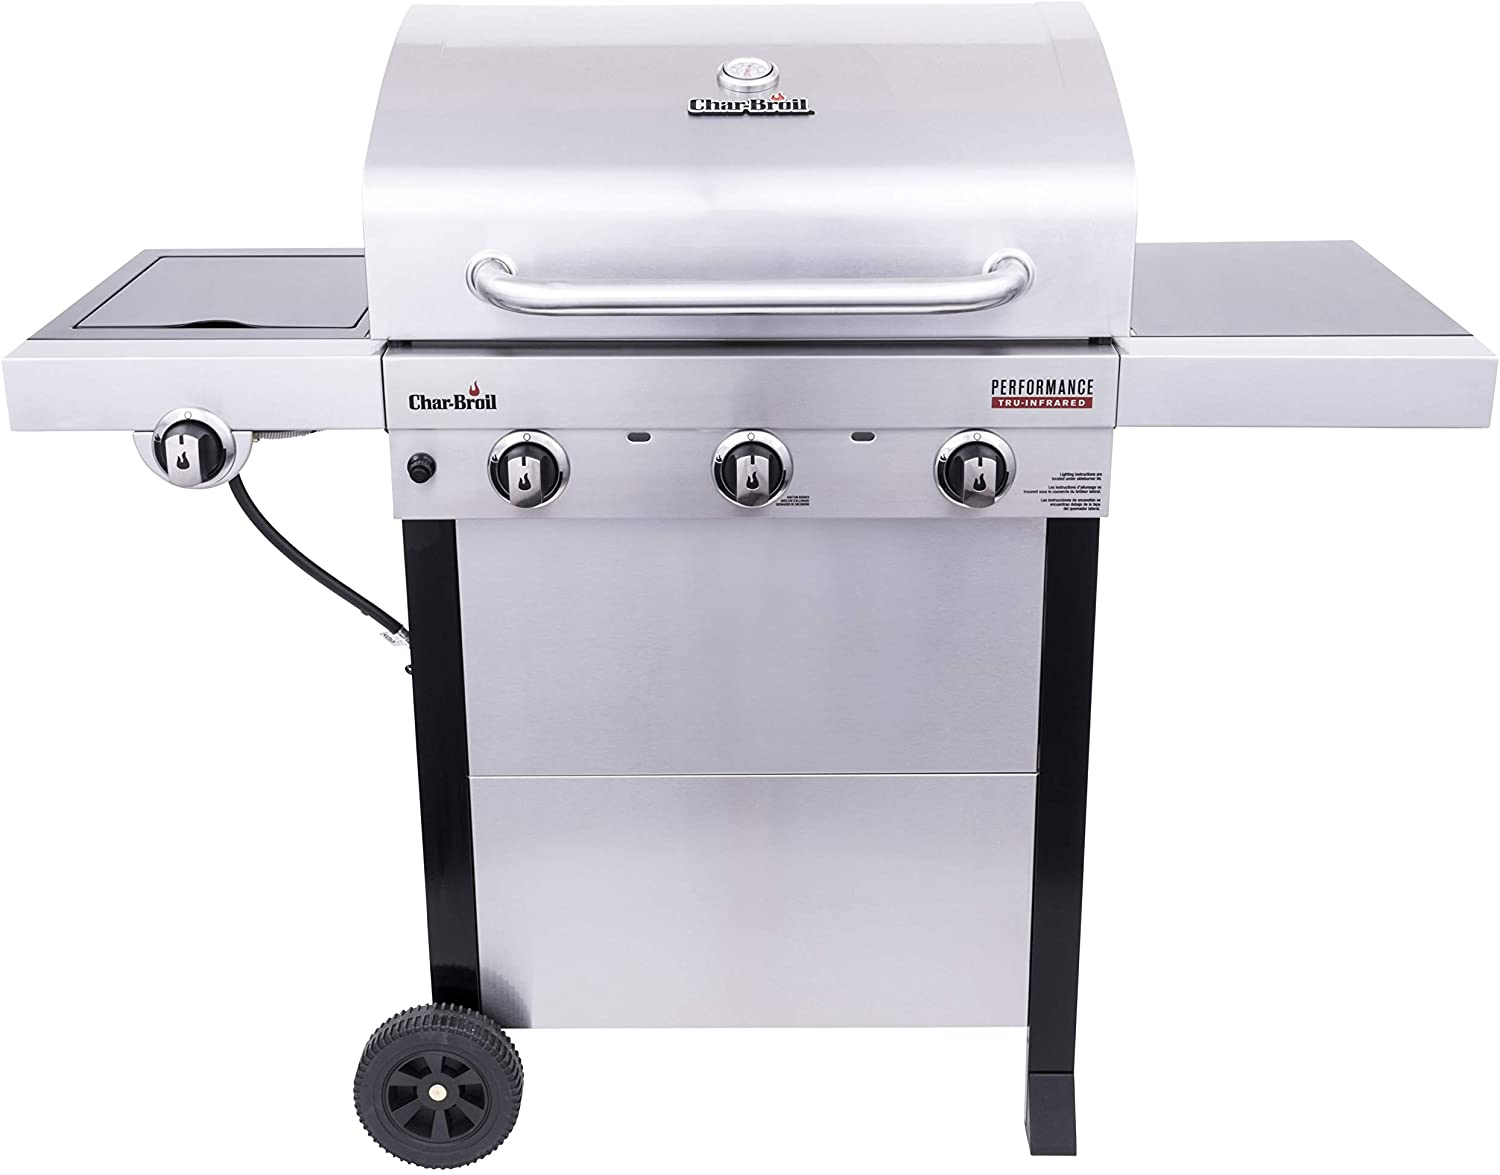 Char-Broil 463370719 Performance Tru-Infrared 3-Burner Cart Style Gas Grill